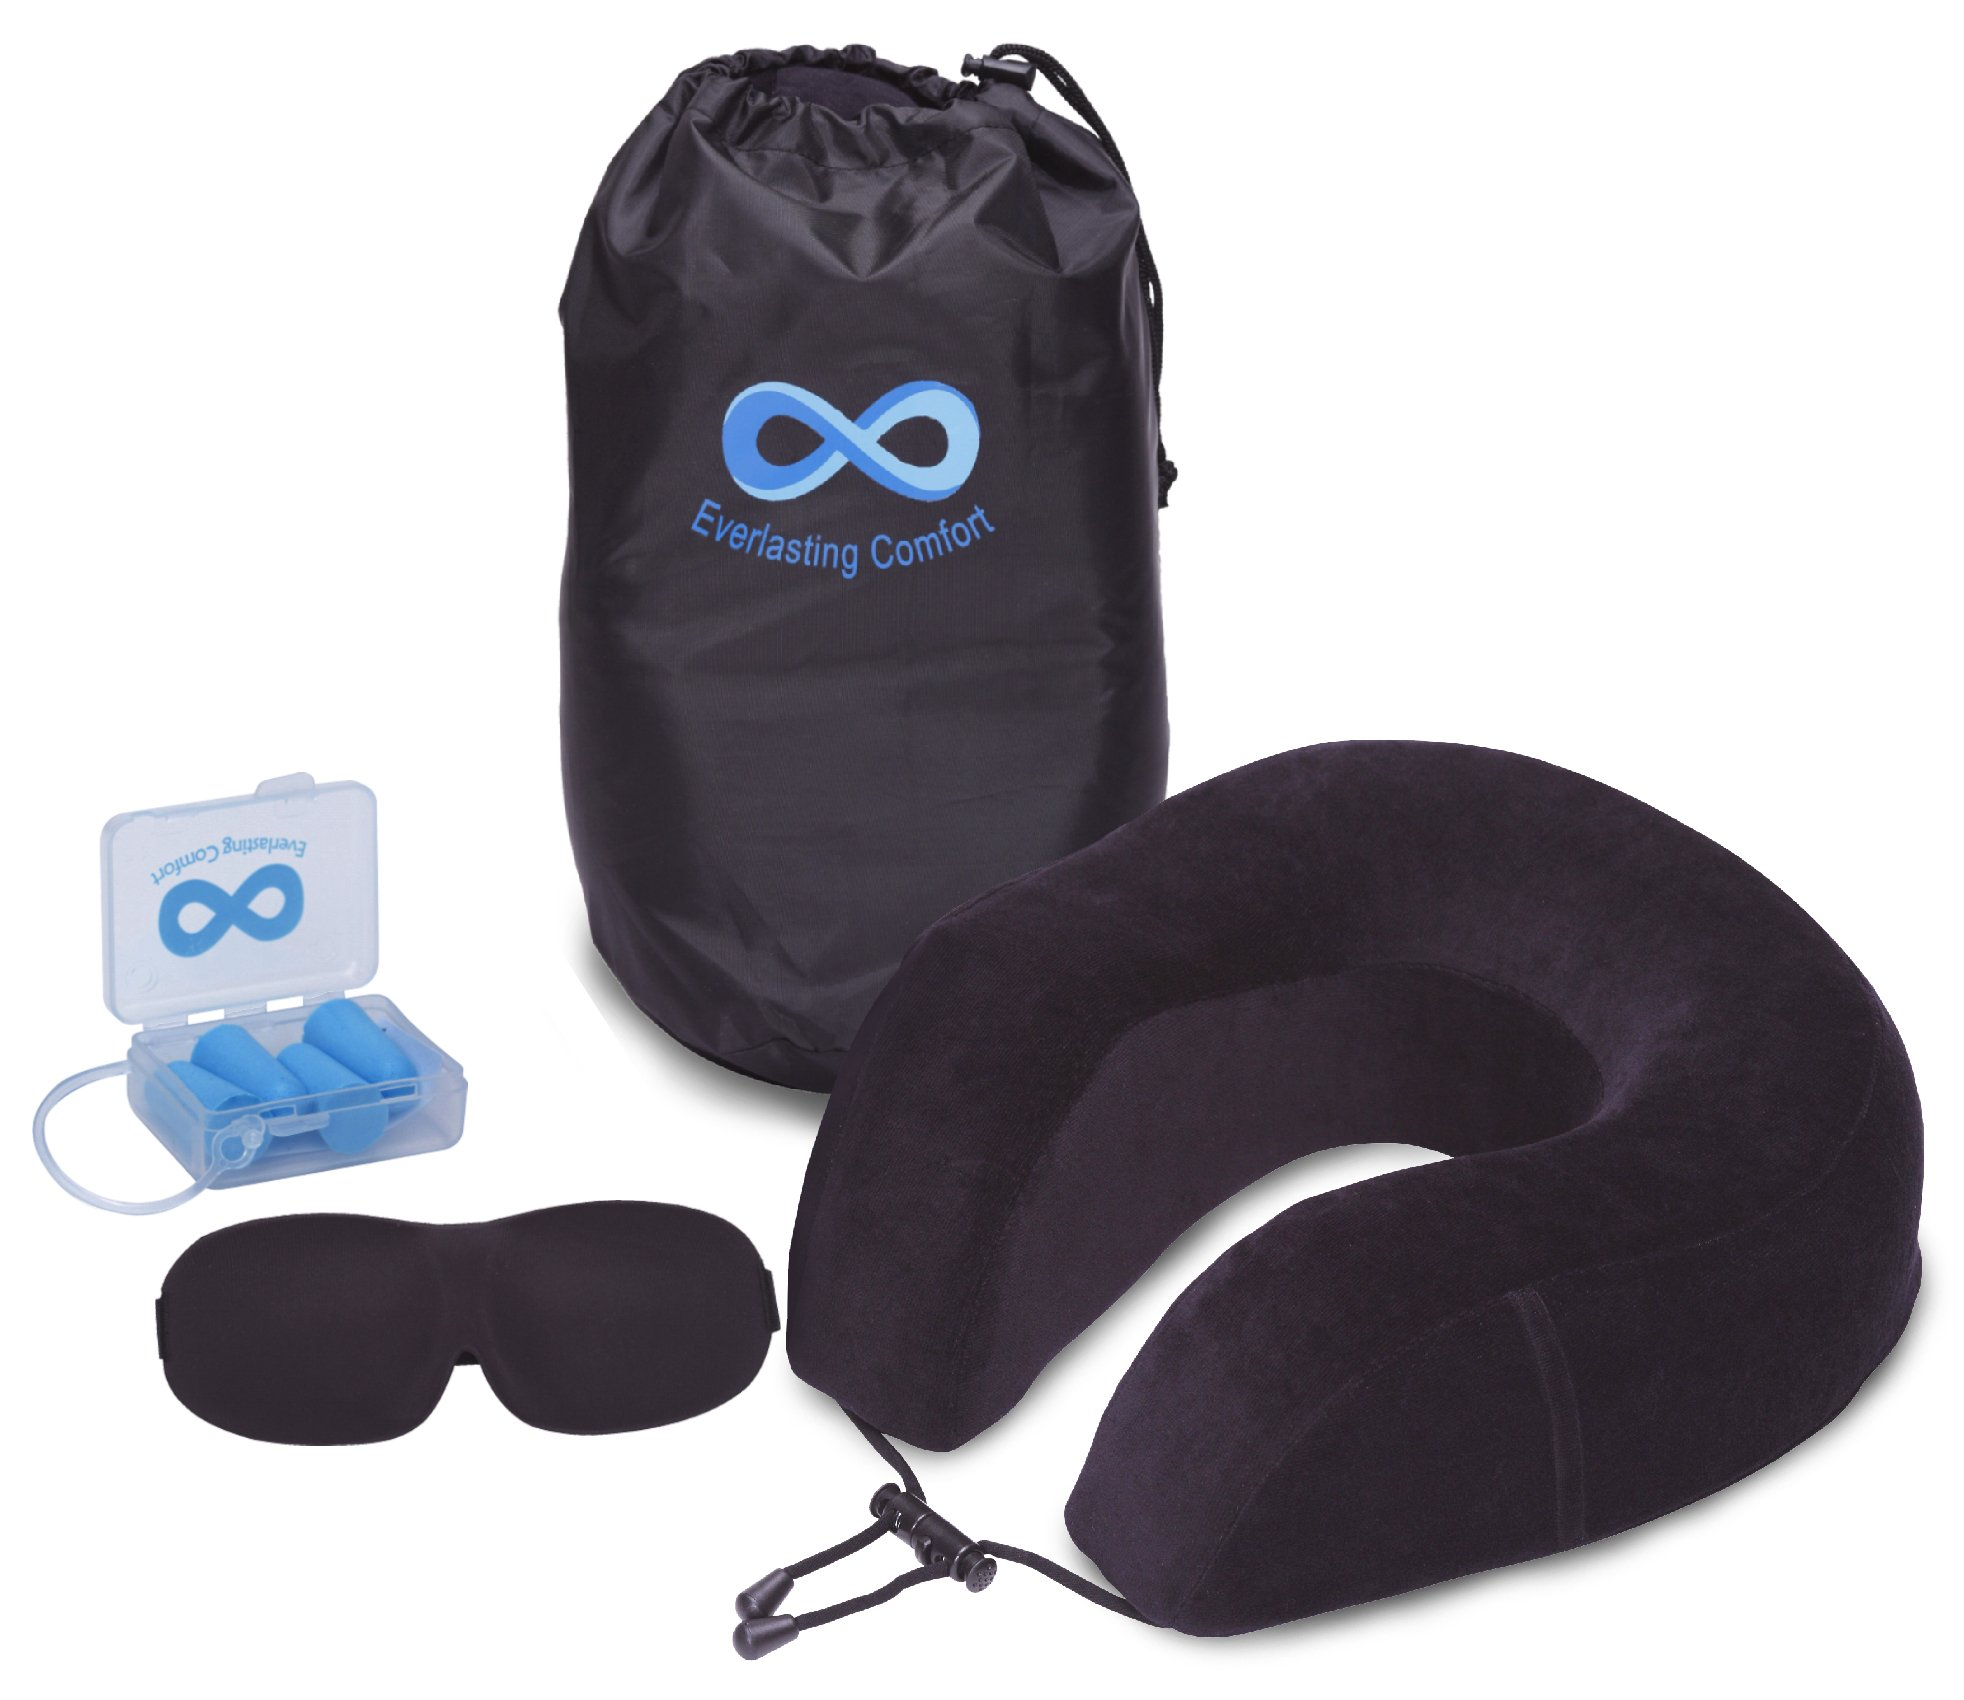 jo the airplane pillows huz of for or do design t travel a cup best pillow airplanes don infinity